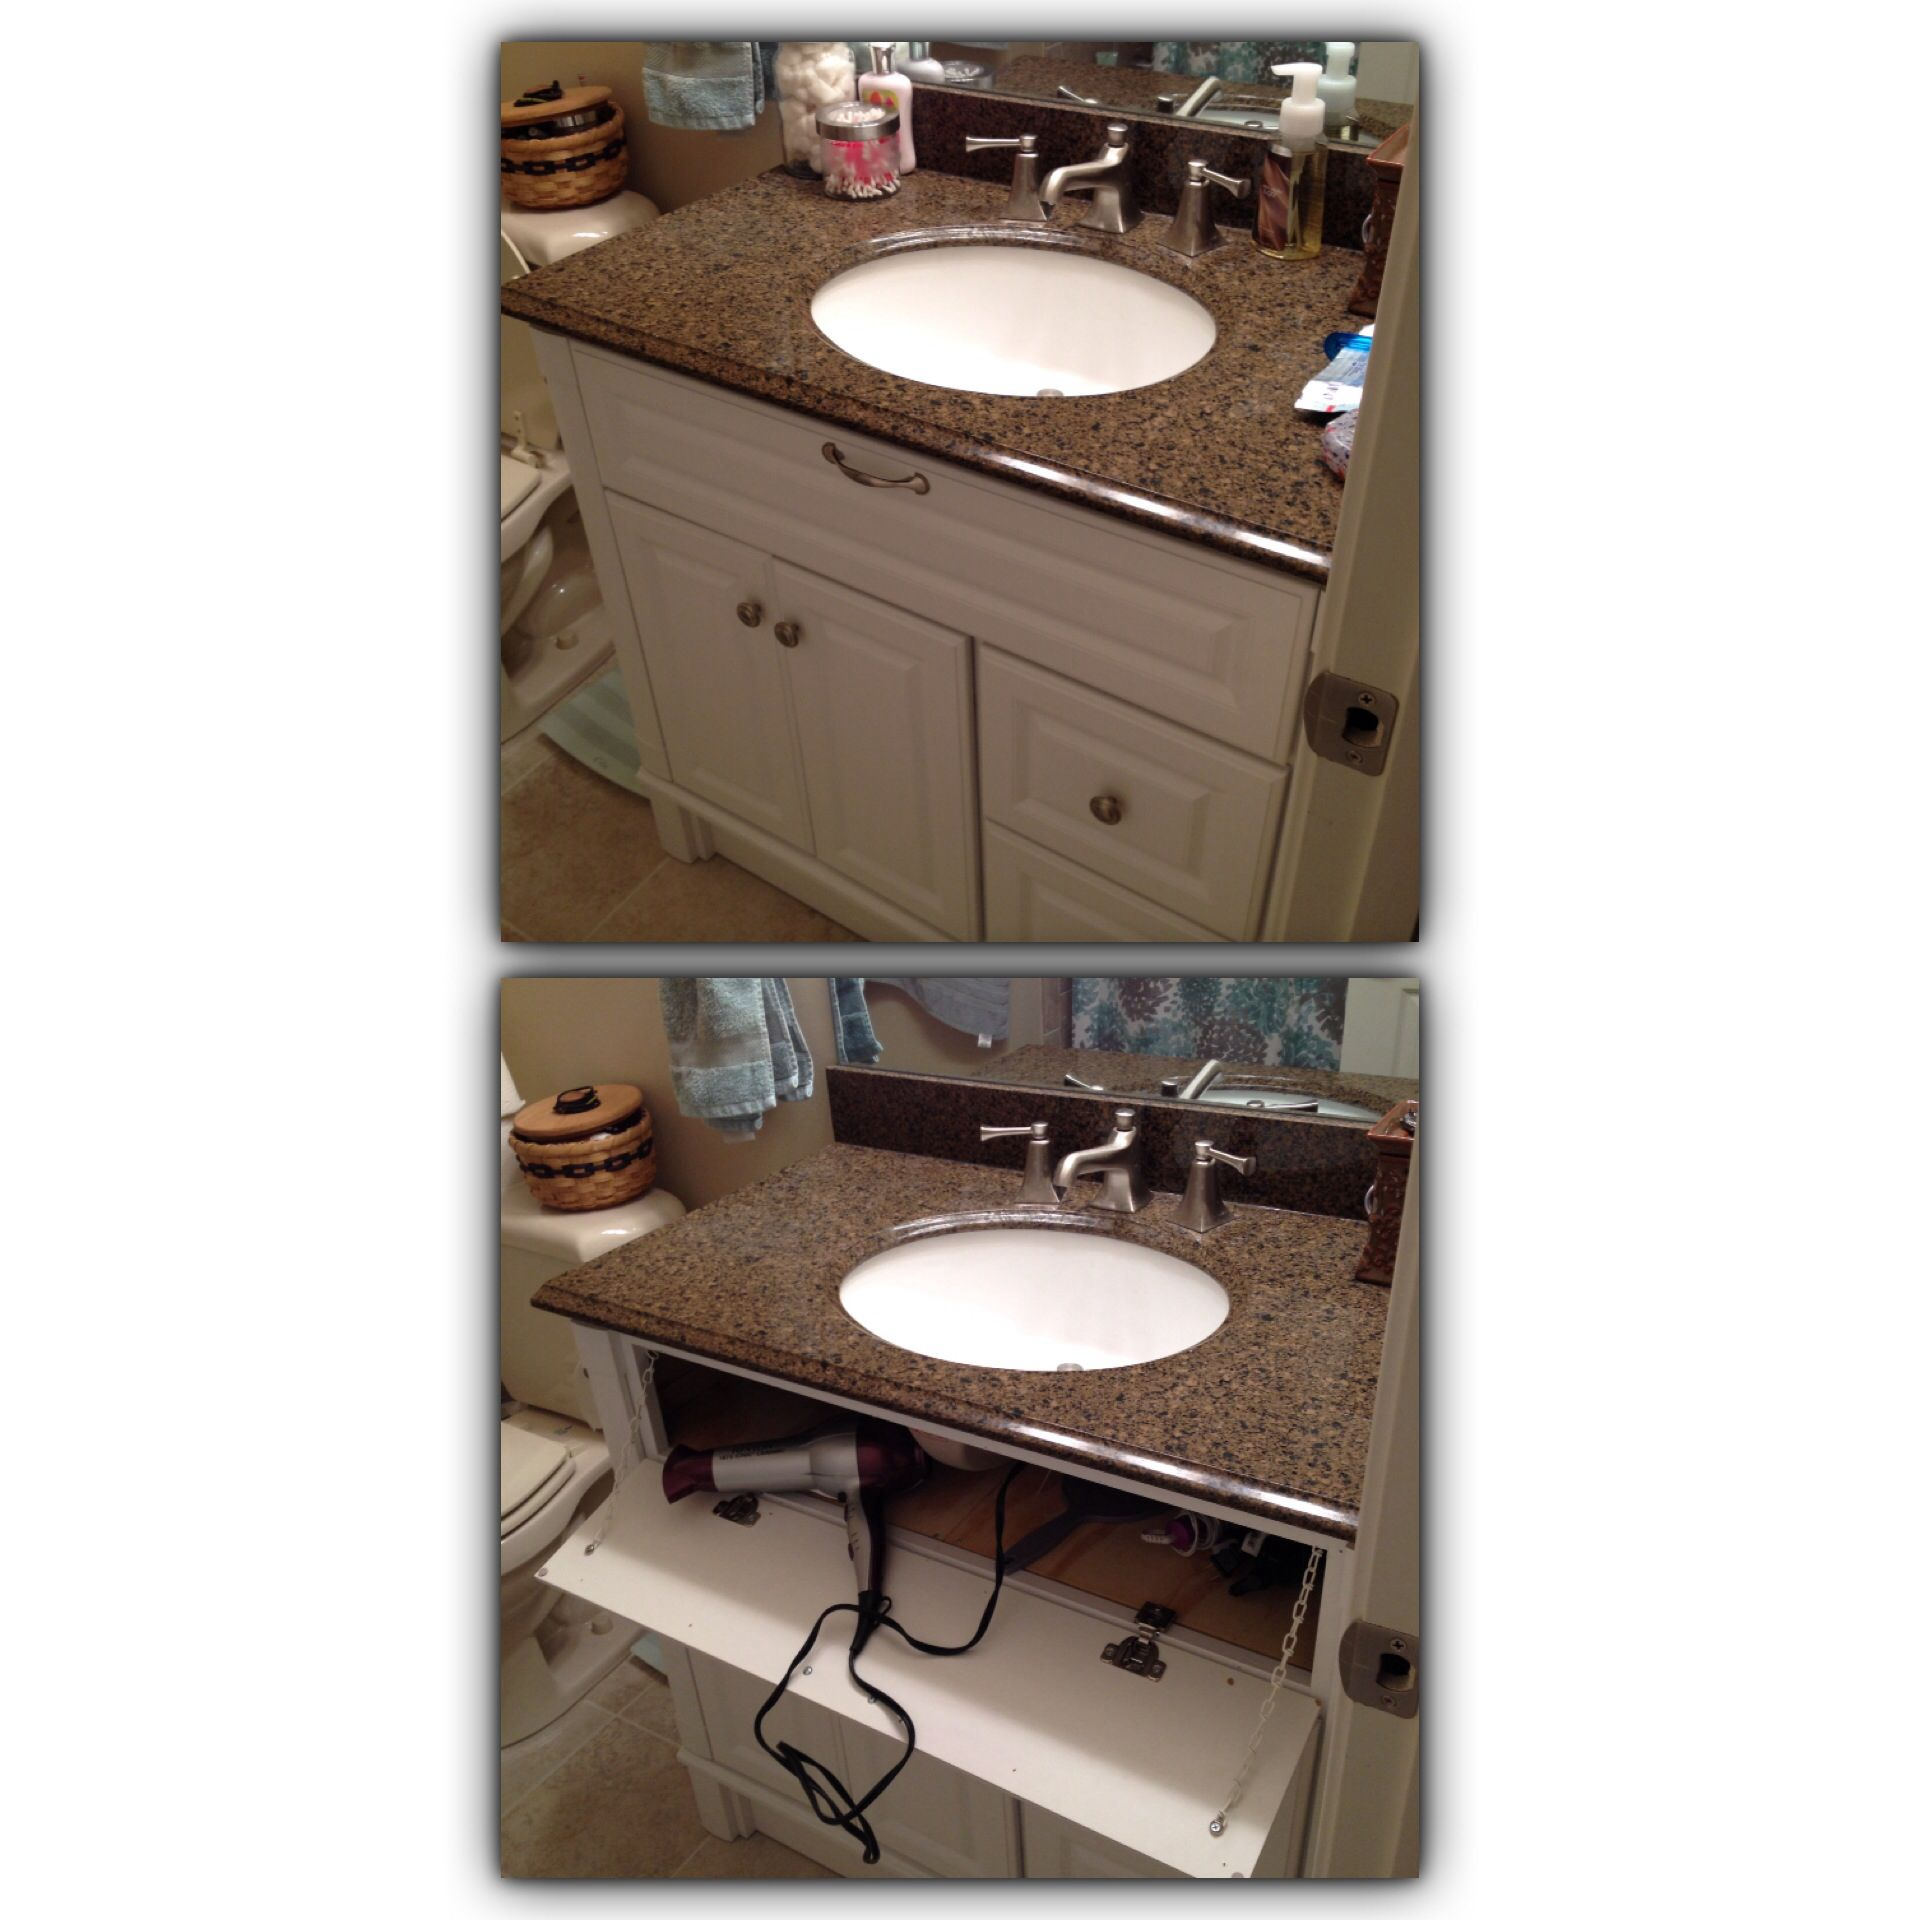 Hair Dryer Storage And Outlet Under Bathroom Sink Thanks To